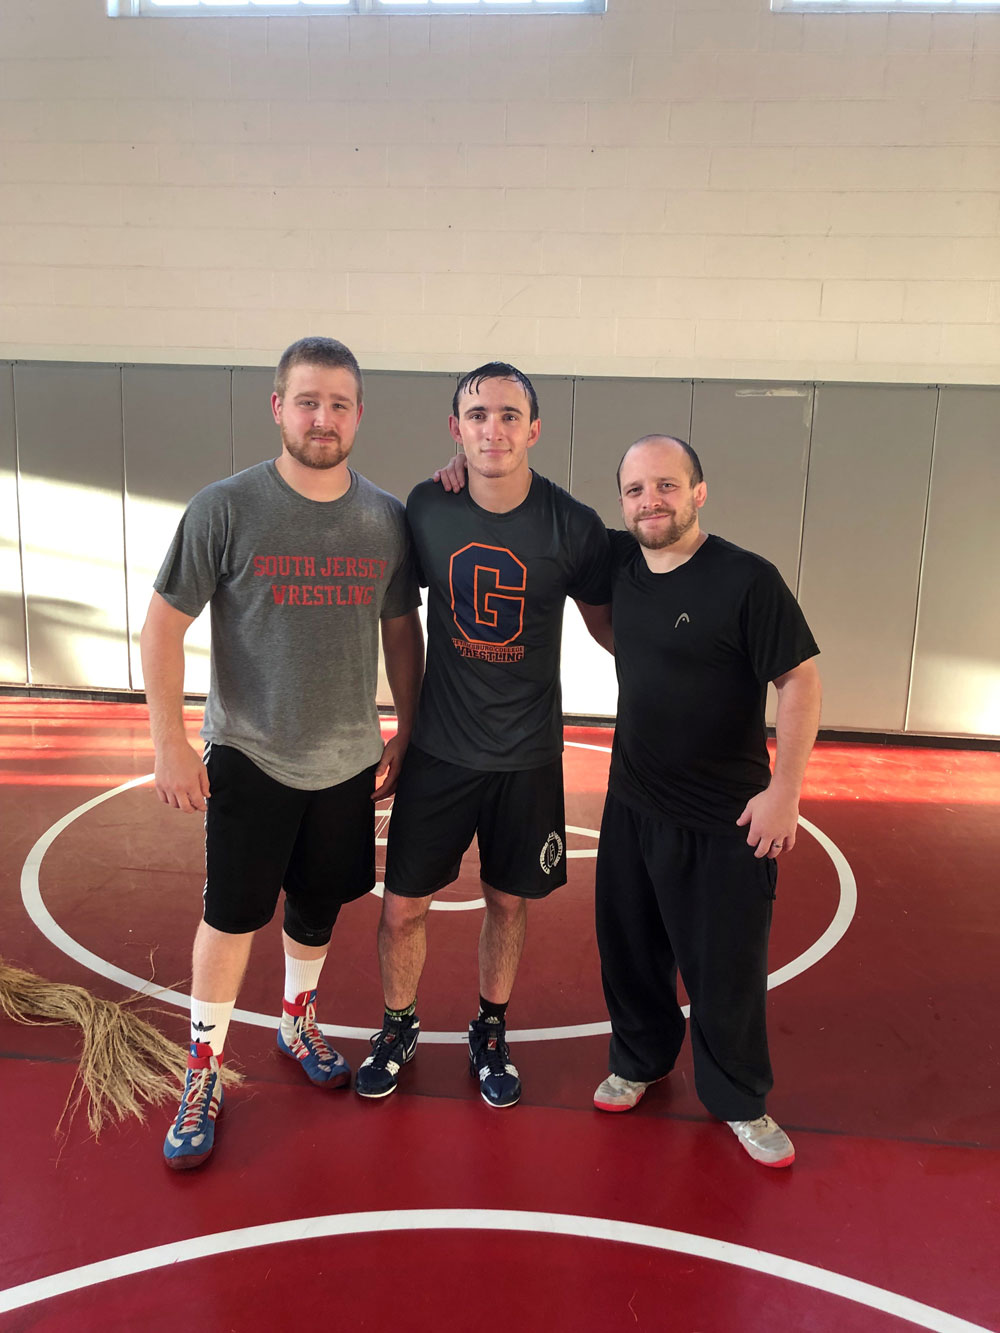 Sean Thompson posing with two other wrestlers in a gym